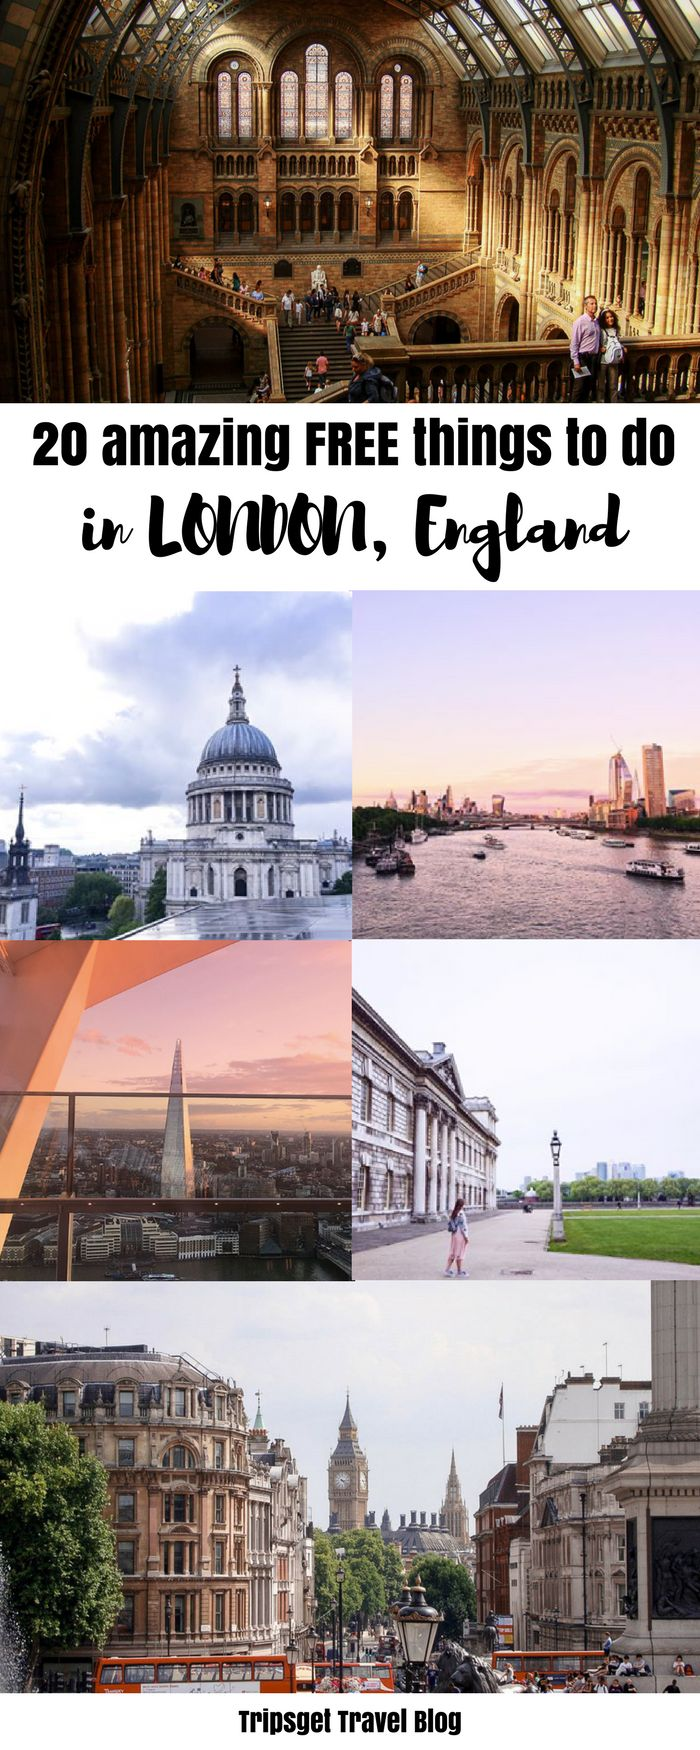 20 free things to do in London. Museums, parks, activities and attractions. Visit London on budget